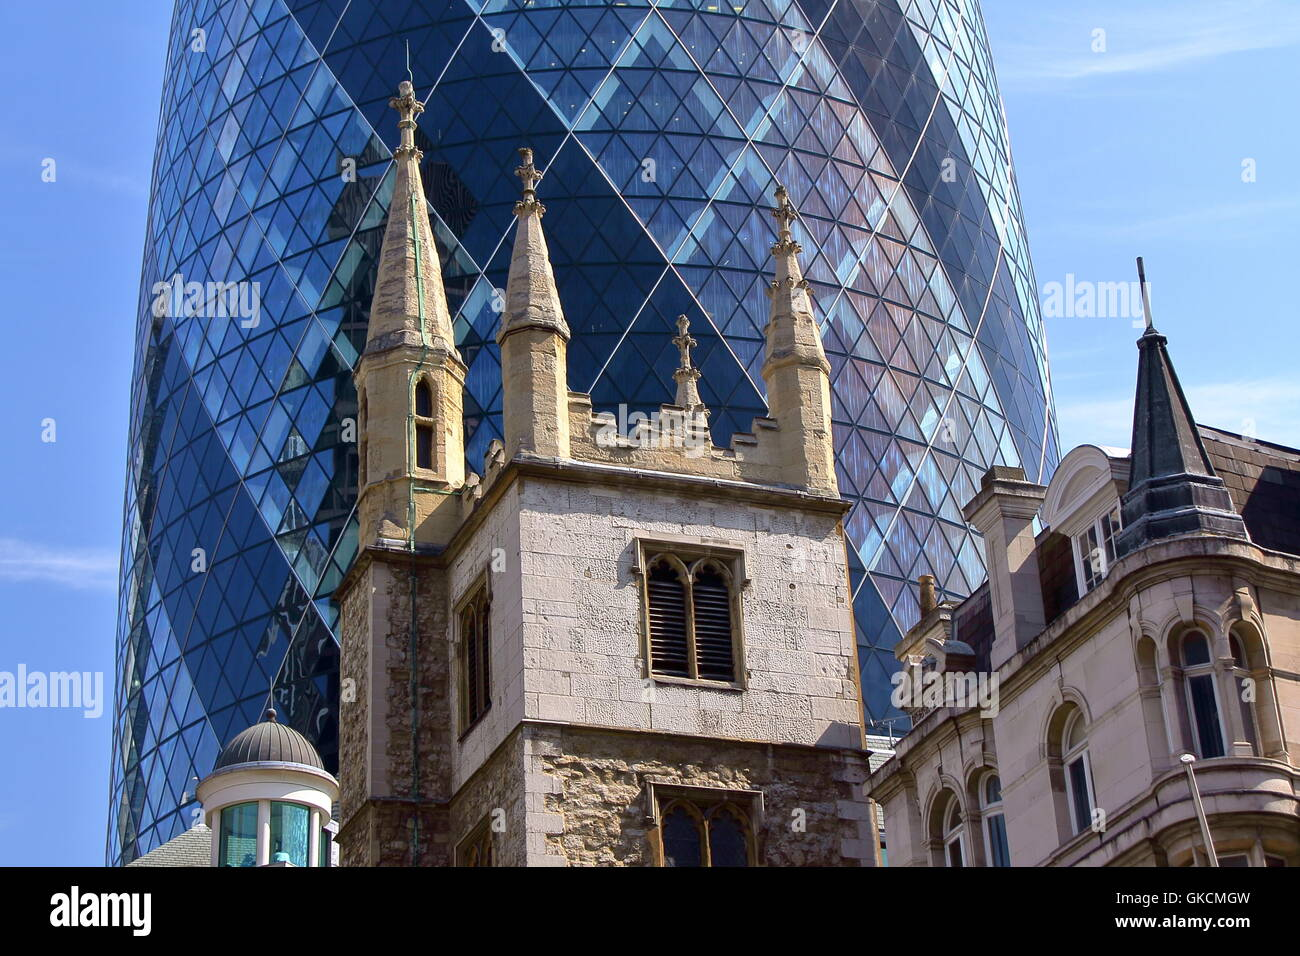 The Gherkin (30 St Mary Axe) with turrets in the foreground